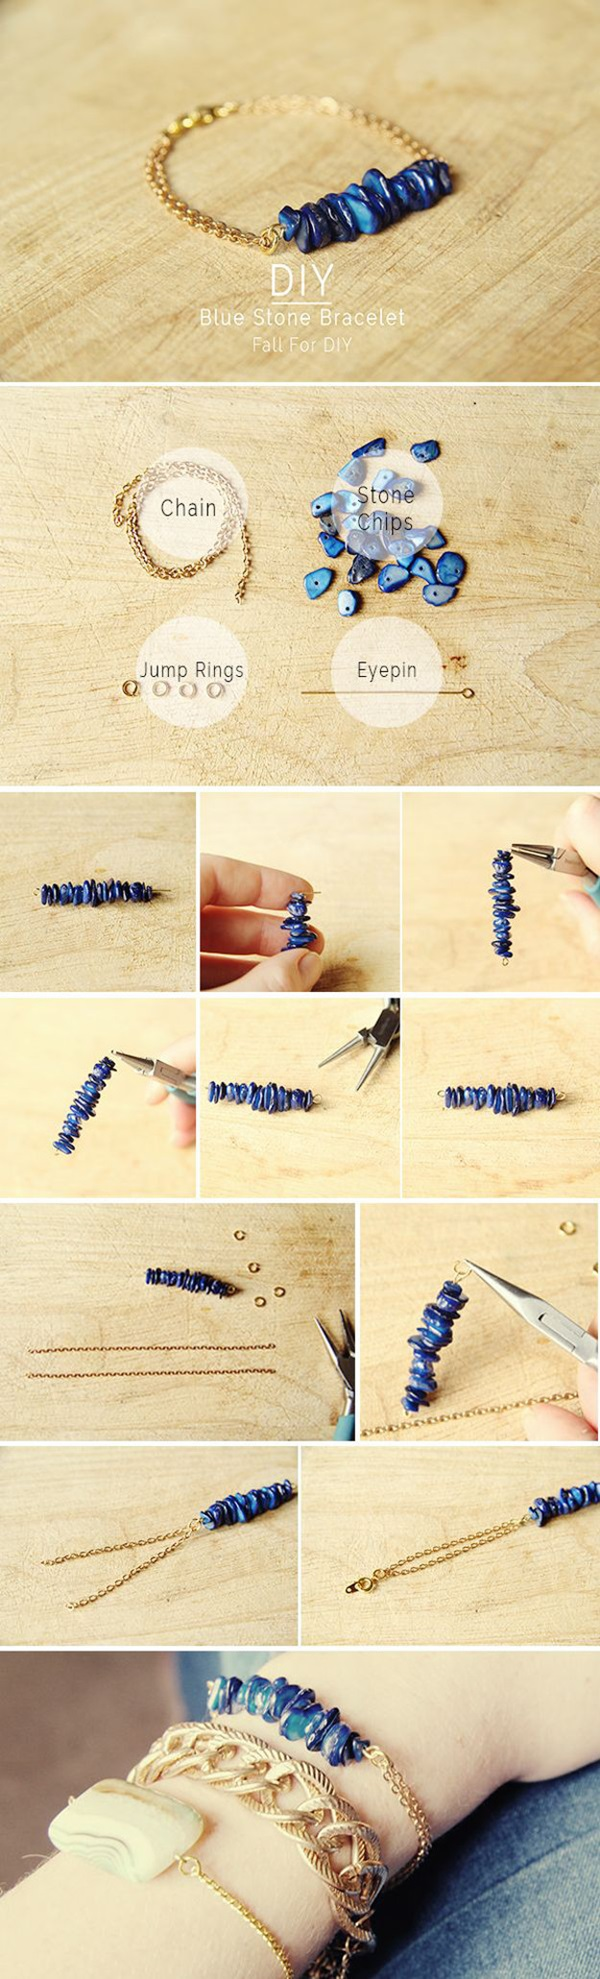 15 diy bracelet ideas to highlight your style